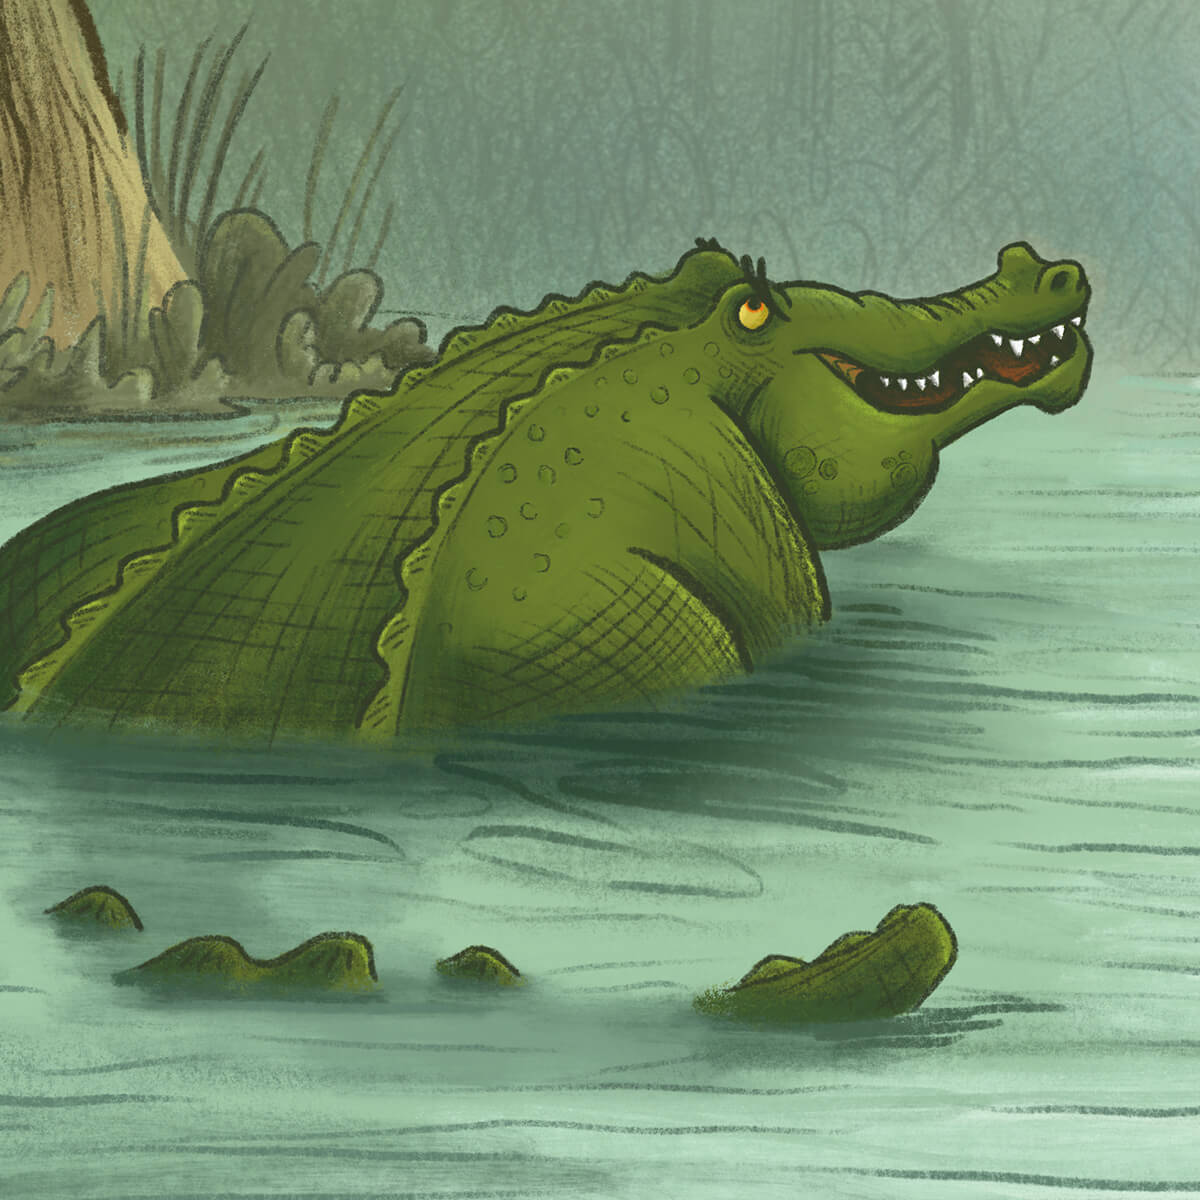 whimsical children's illustration of an alligator in the water